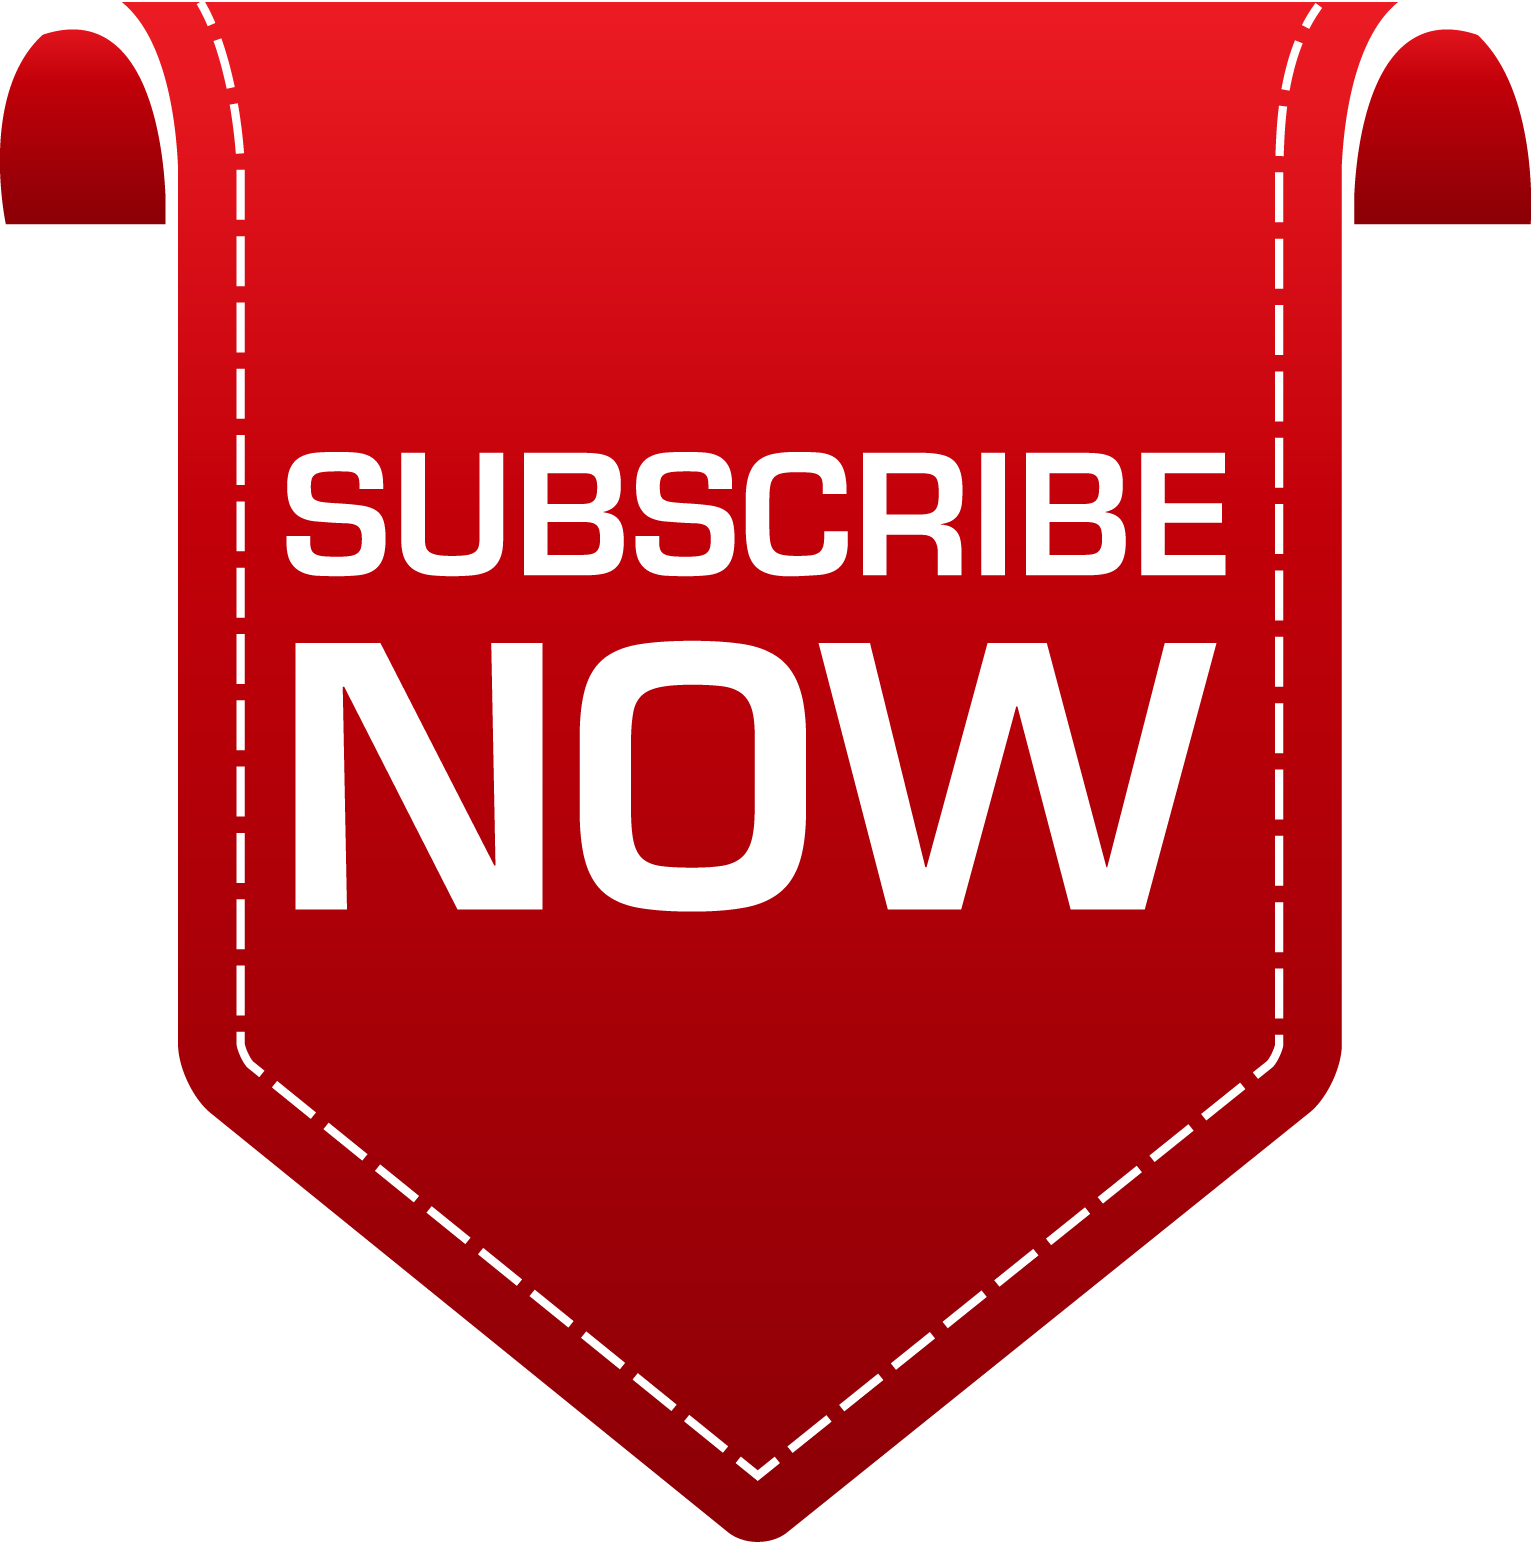 Youtube Subscribe Banner Image Png image #39352